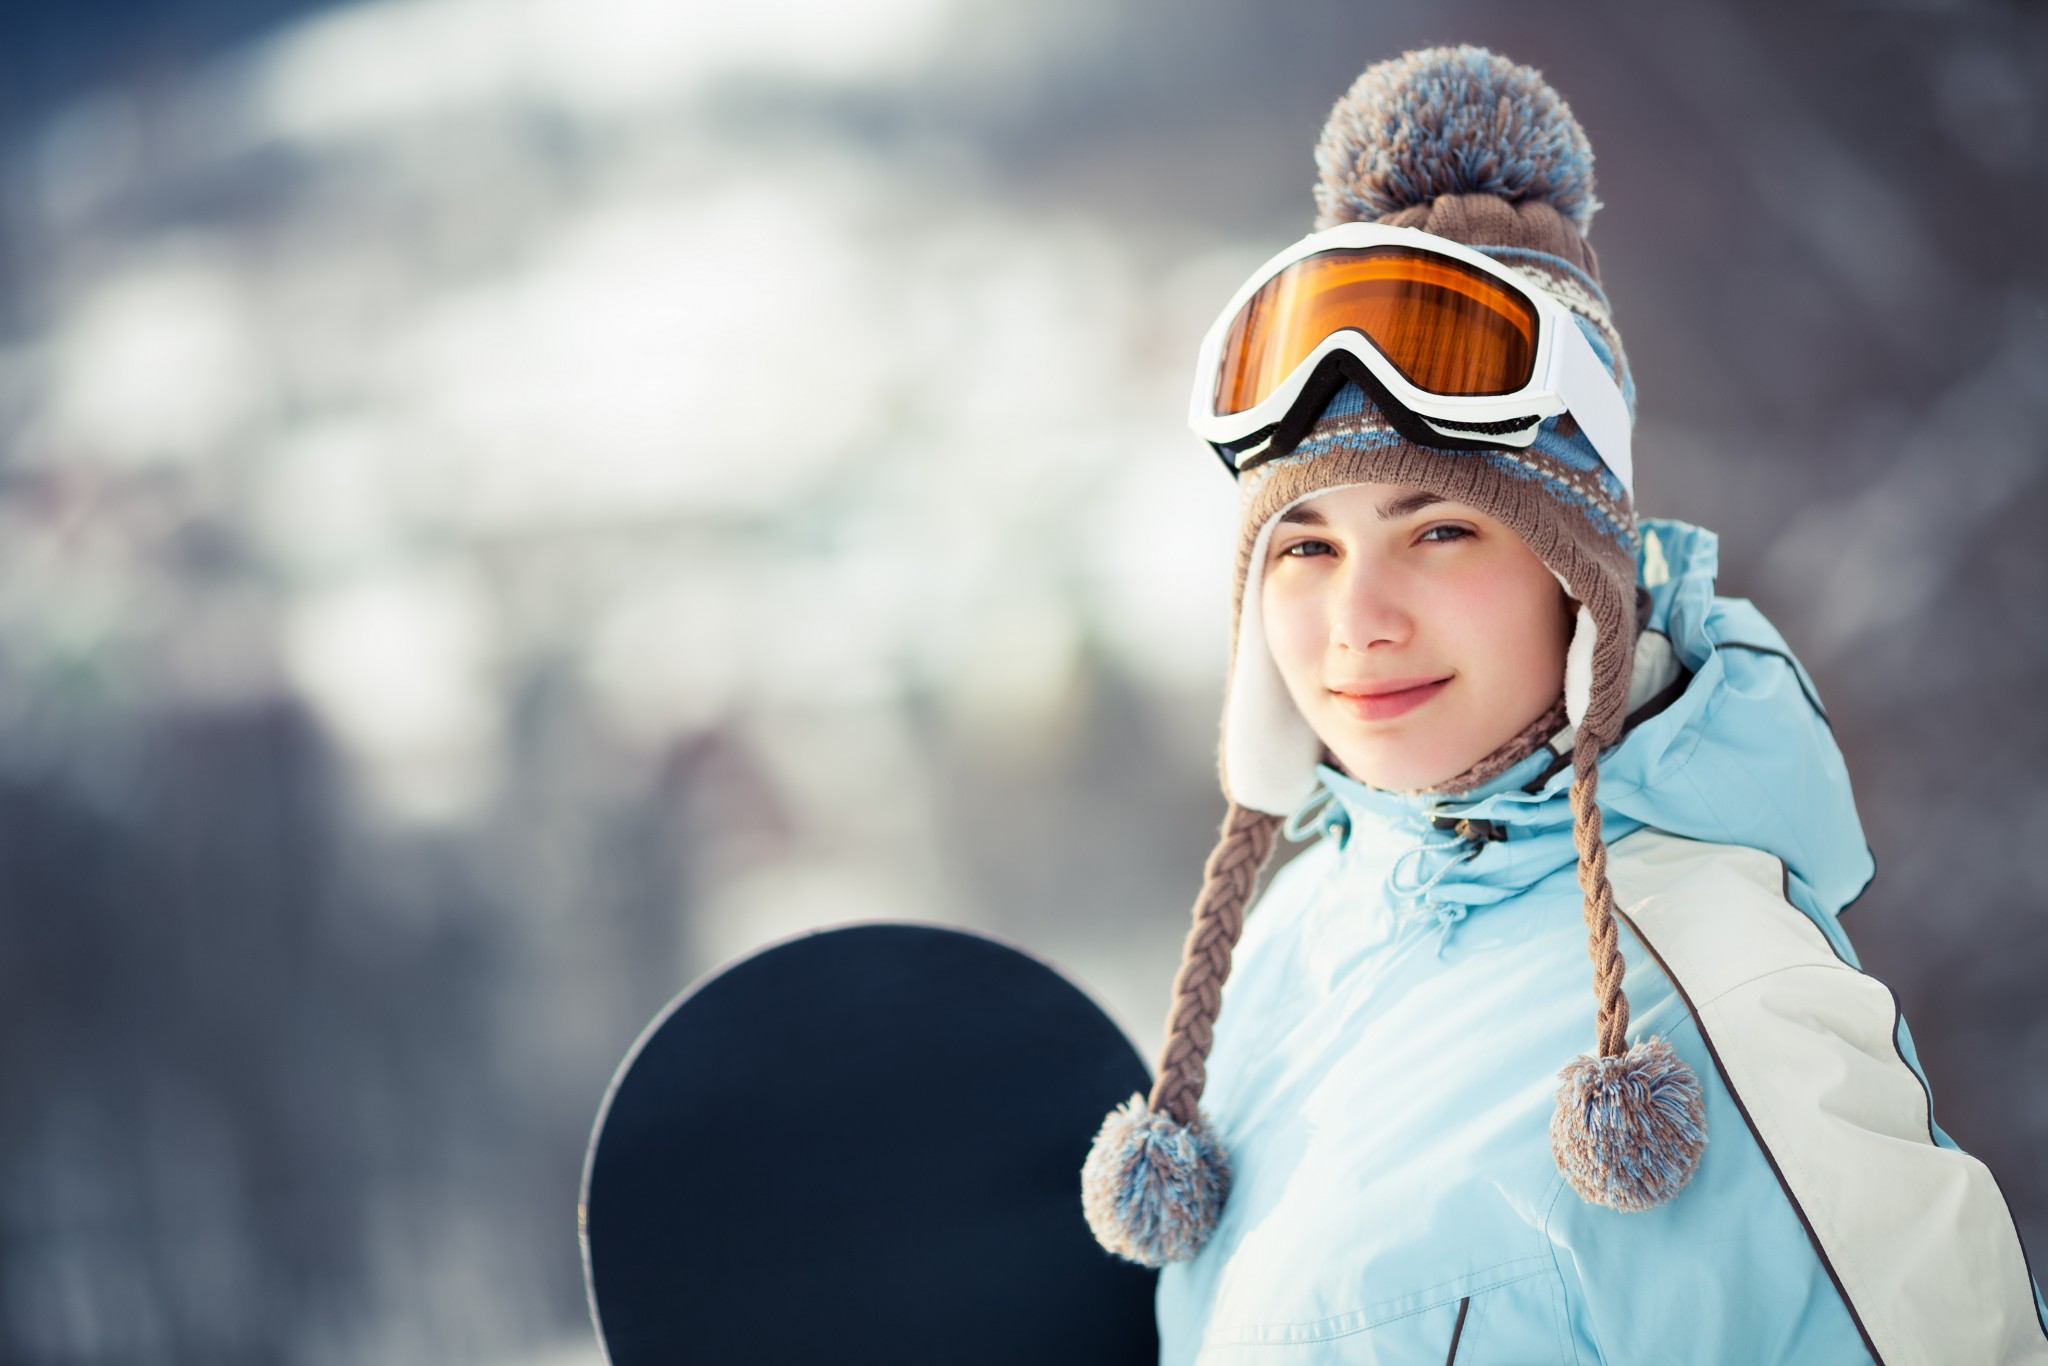 Pretty female snowboarder